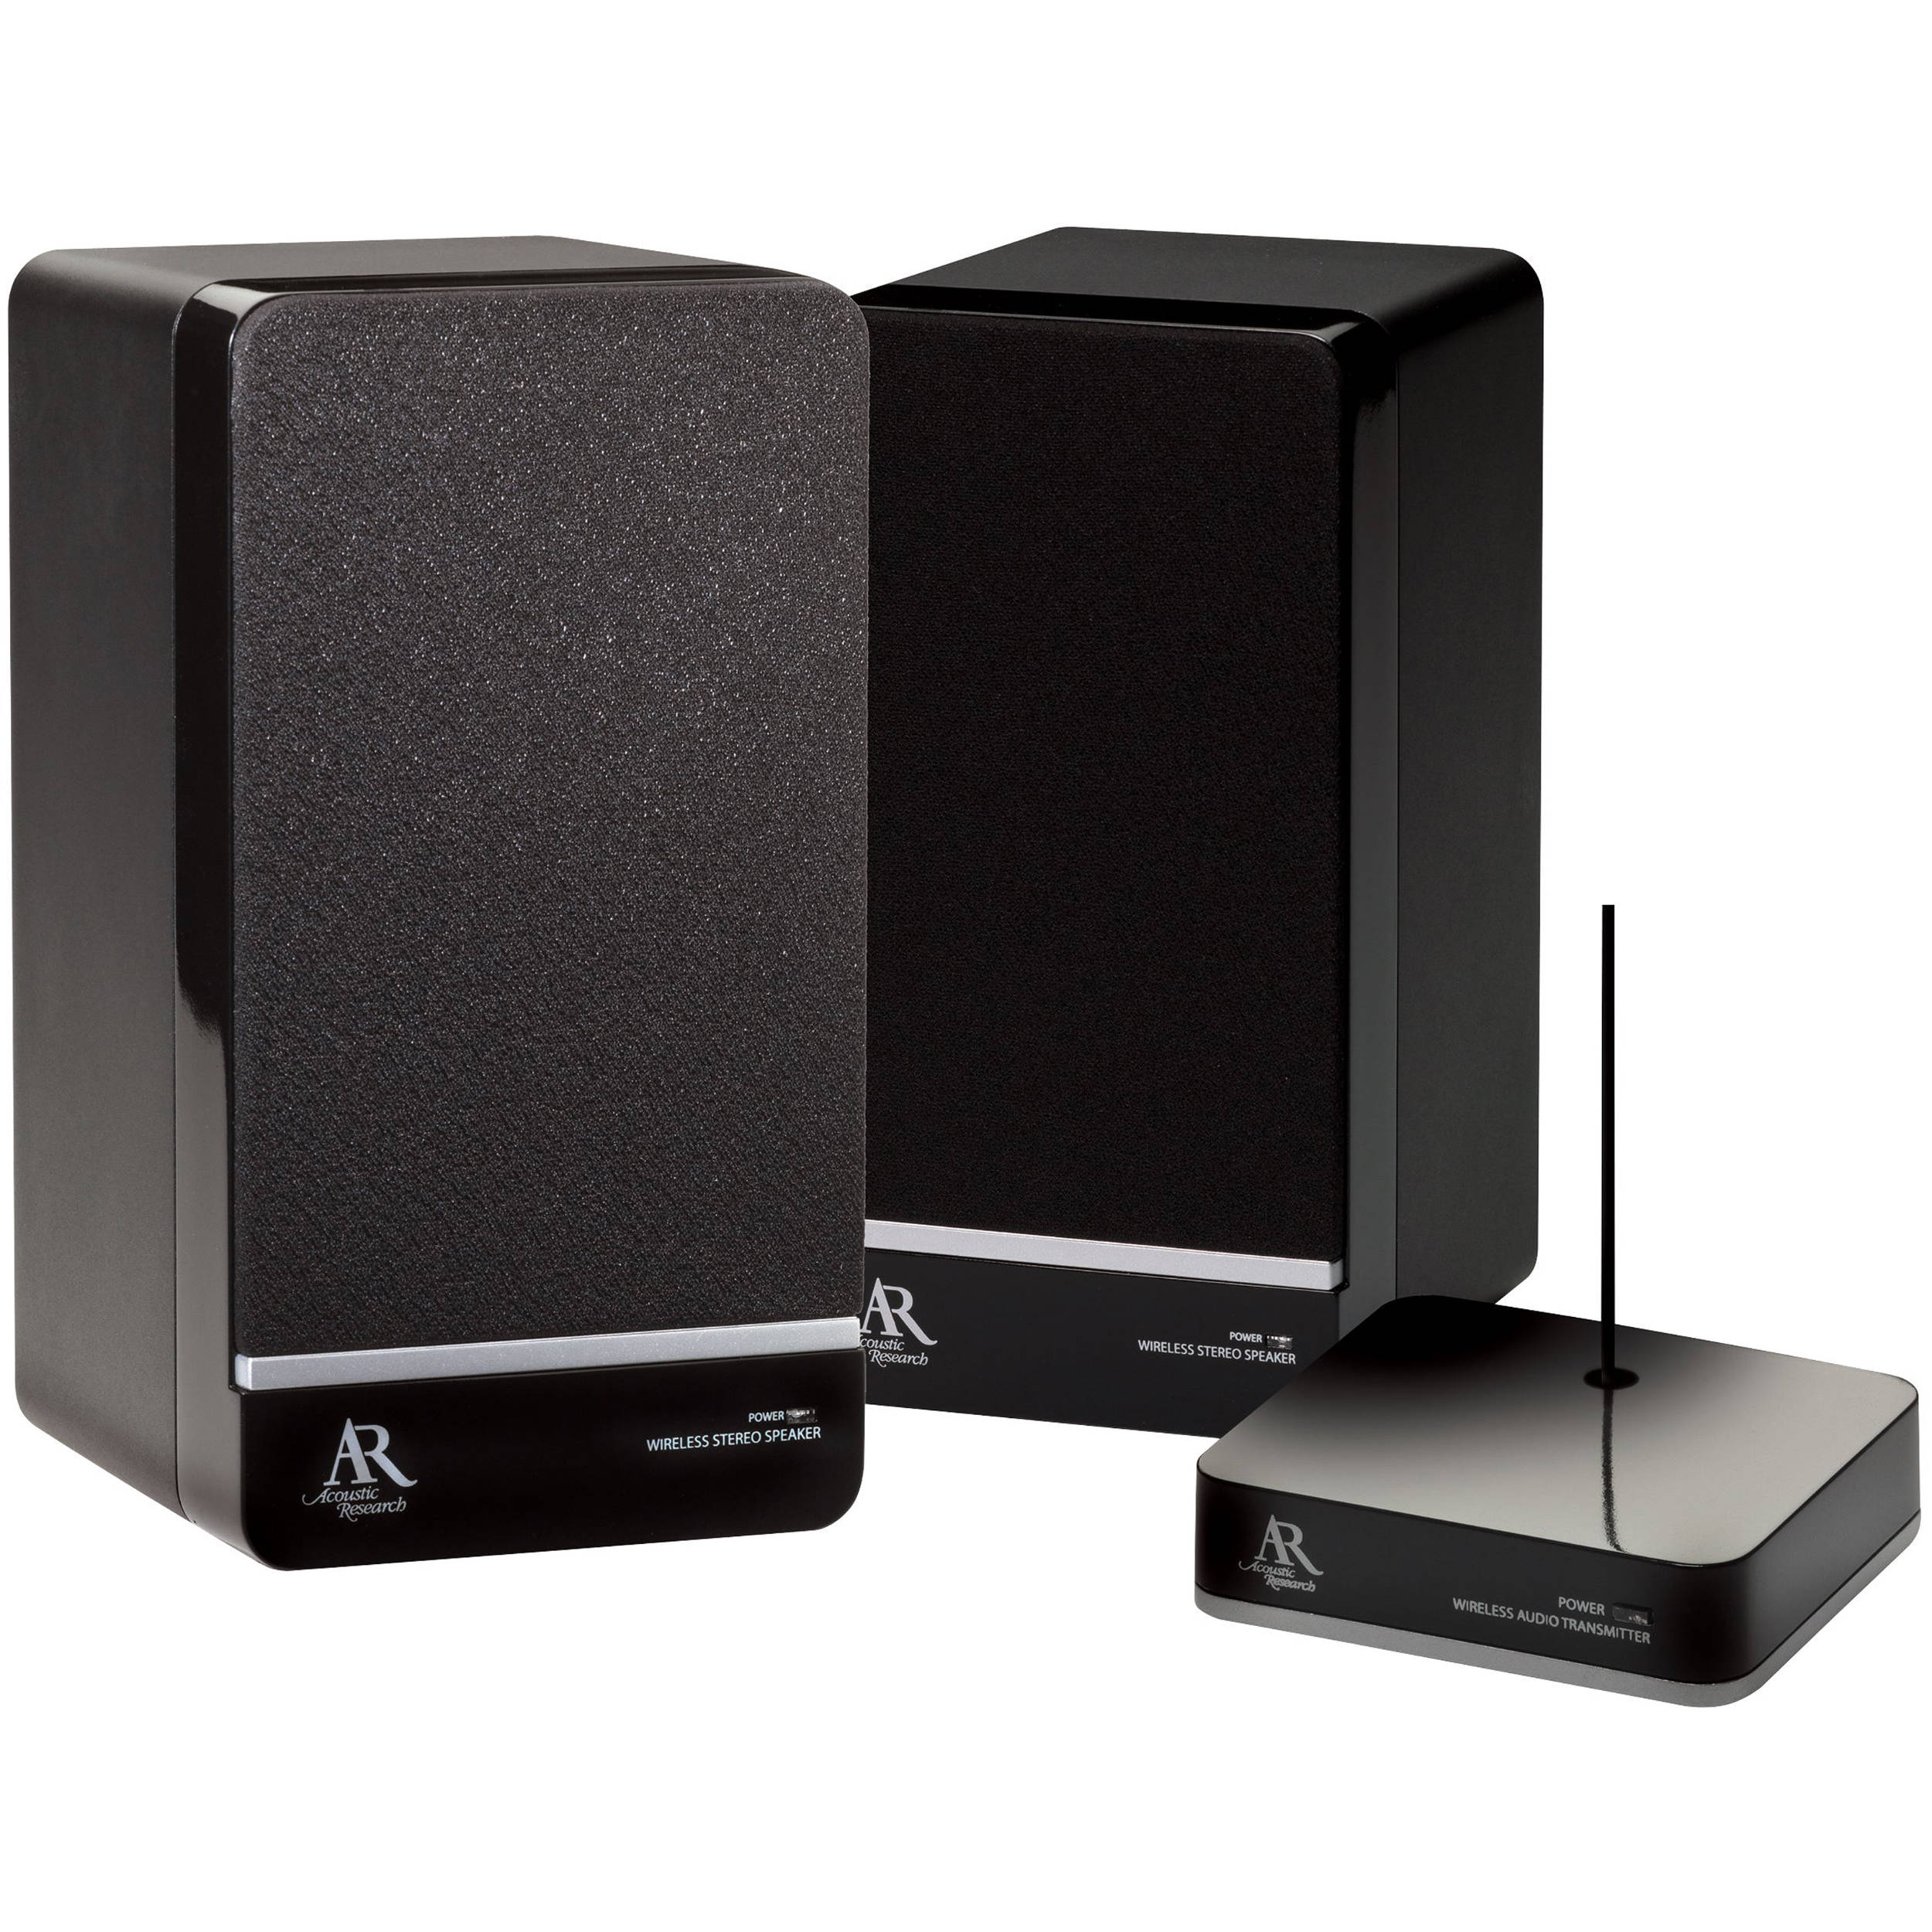 Acoustic Research AW880 Wireless Indoor Stereo Speakers Pair